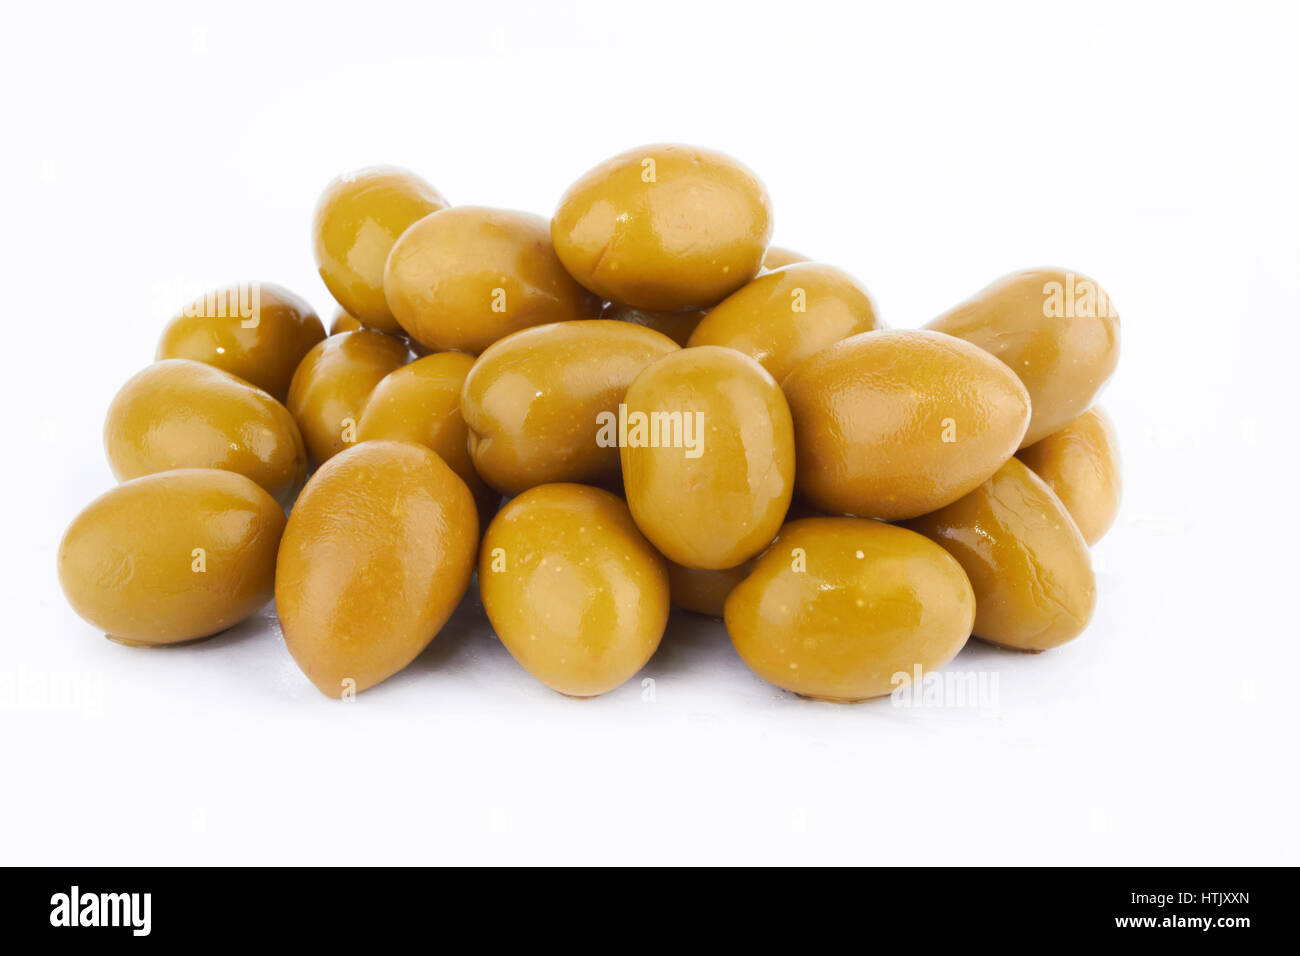 Green olives on a white background - Stock Image